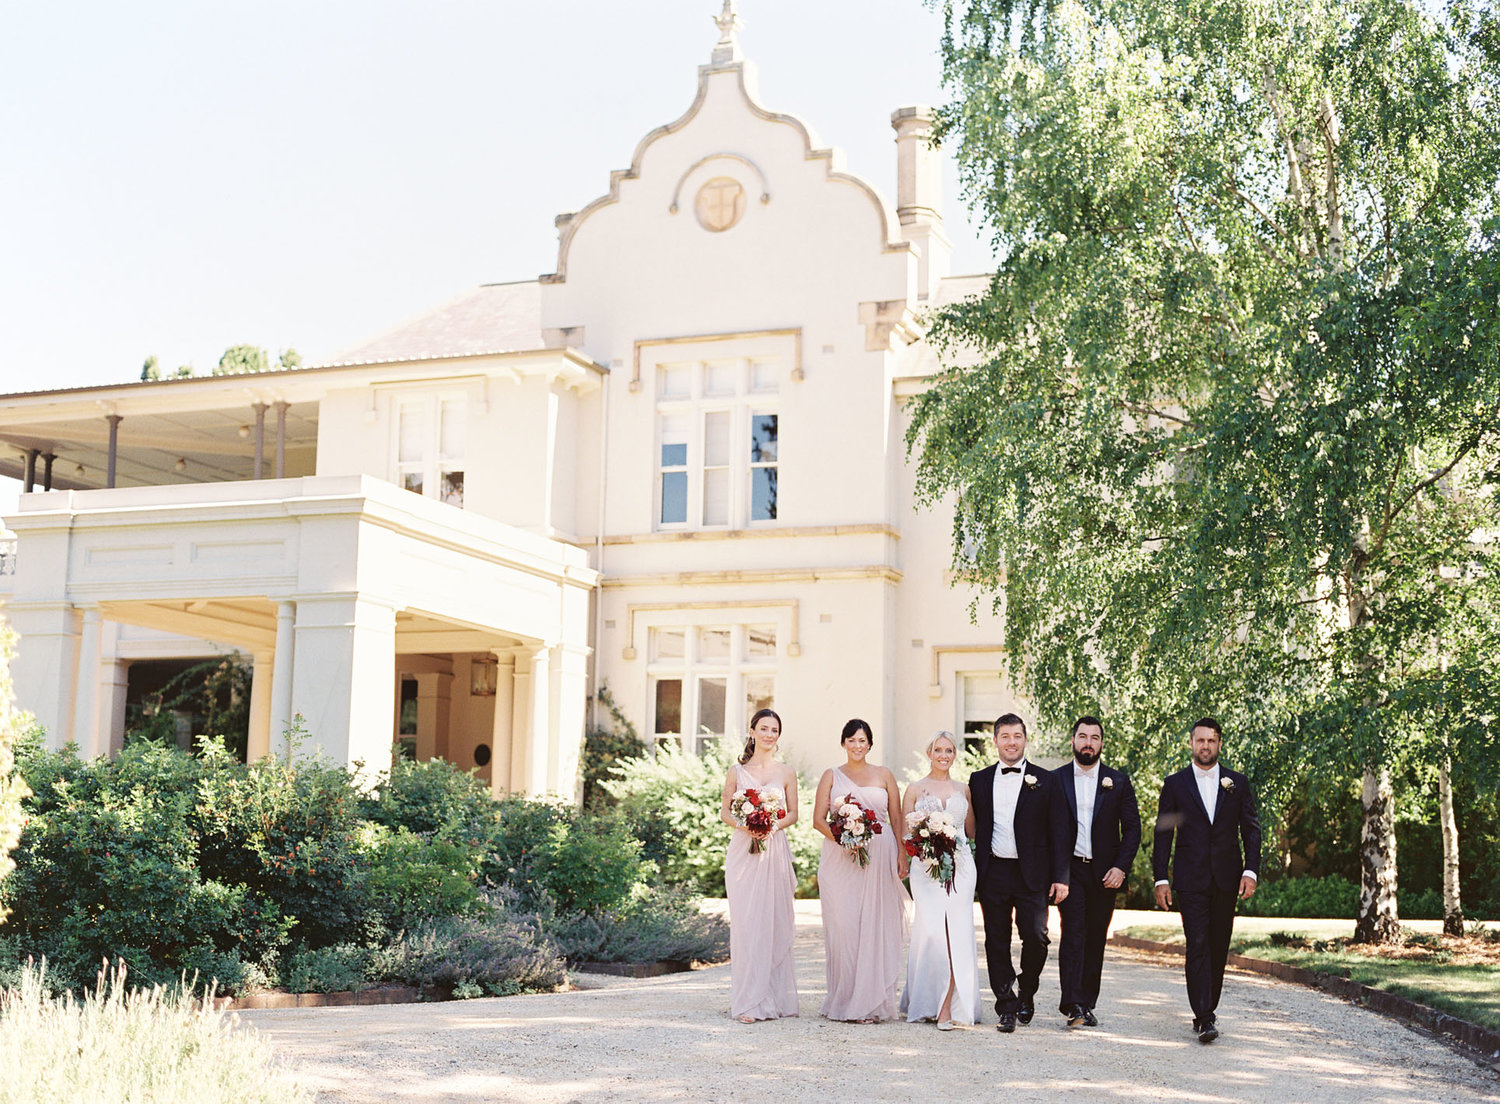 Hopewood House - Kylie & Gabriel - Wedding Day Gallery - Bowral Southern Highlands - ceremony and reception - shot 8 - Guests at the residence.jpeg